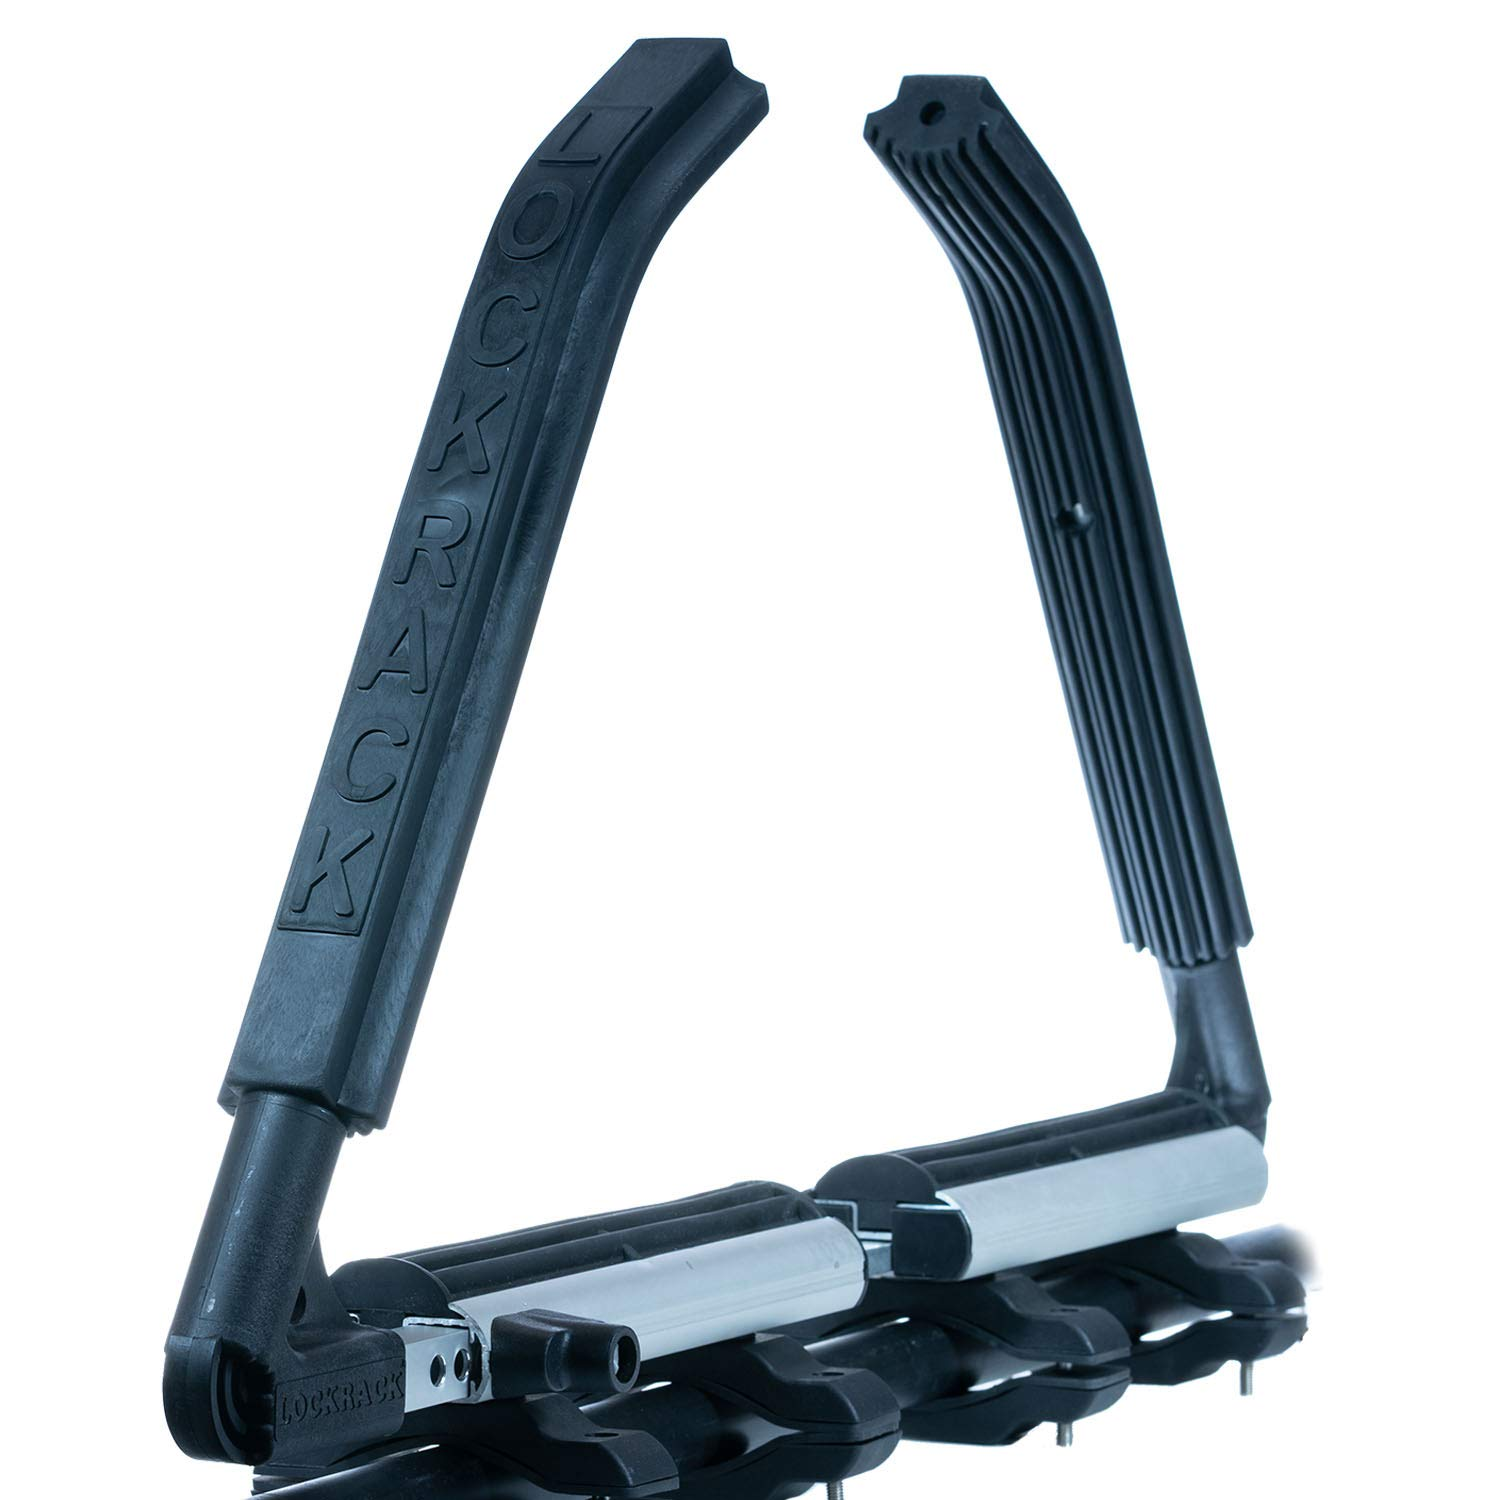 Lockrack Expandable Universal x Rack with Adapters (8) 50-65cm by Lockrack